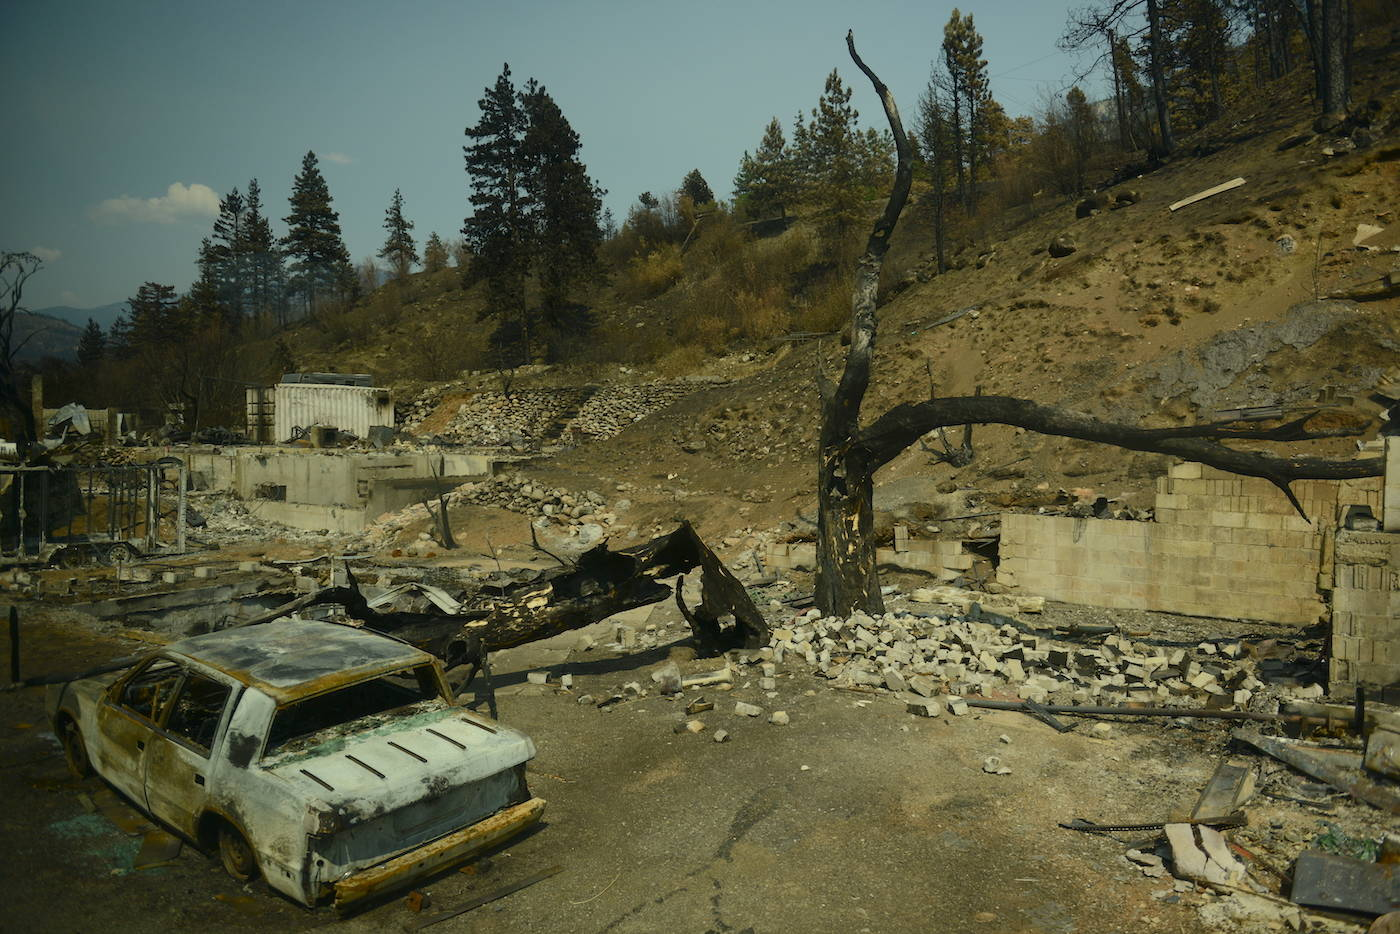 A view of Lytton, B.C. on Friday, July 9, 2021, nine days after a wildfire ripped through the village on June 30, 2021. (Jenna Hauck/ Black Press Media)